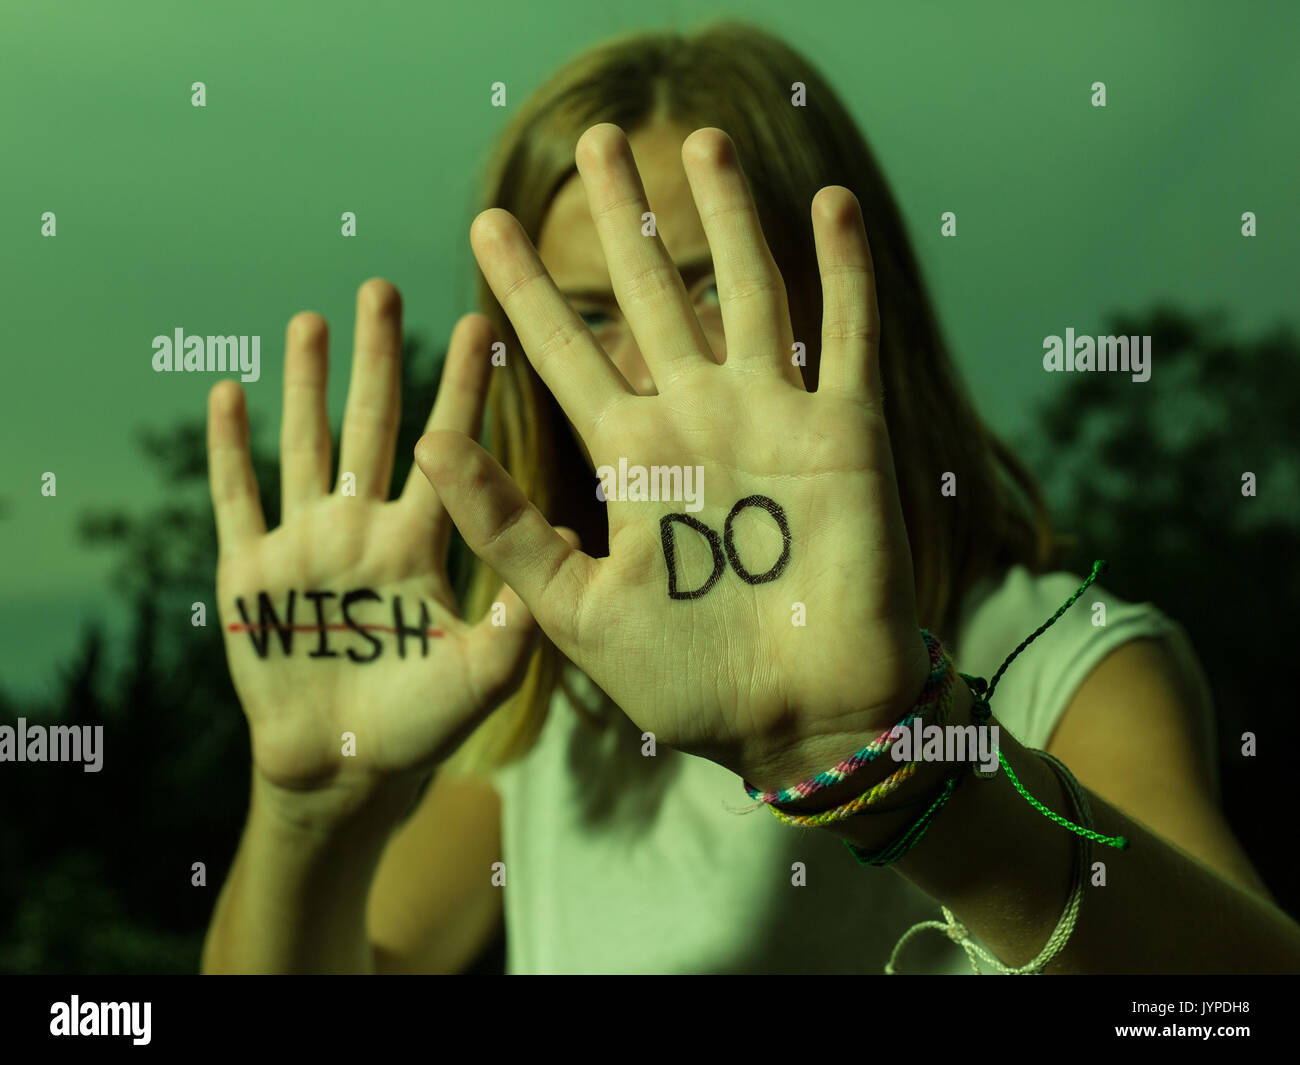 Teenage Girl hold up hands with motivational quotes written on palms. - Stock Image